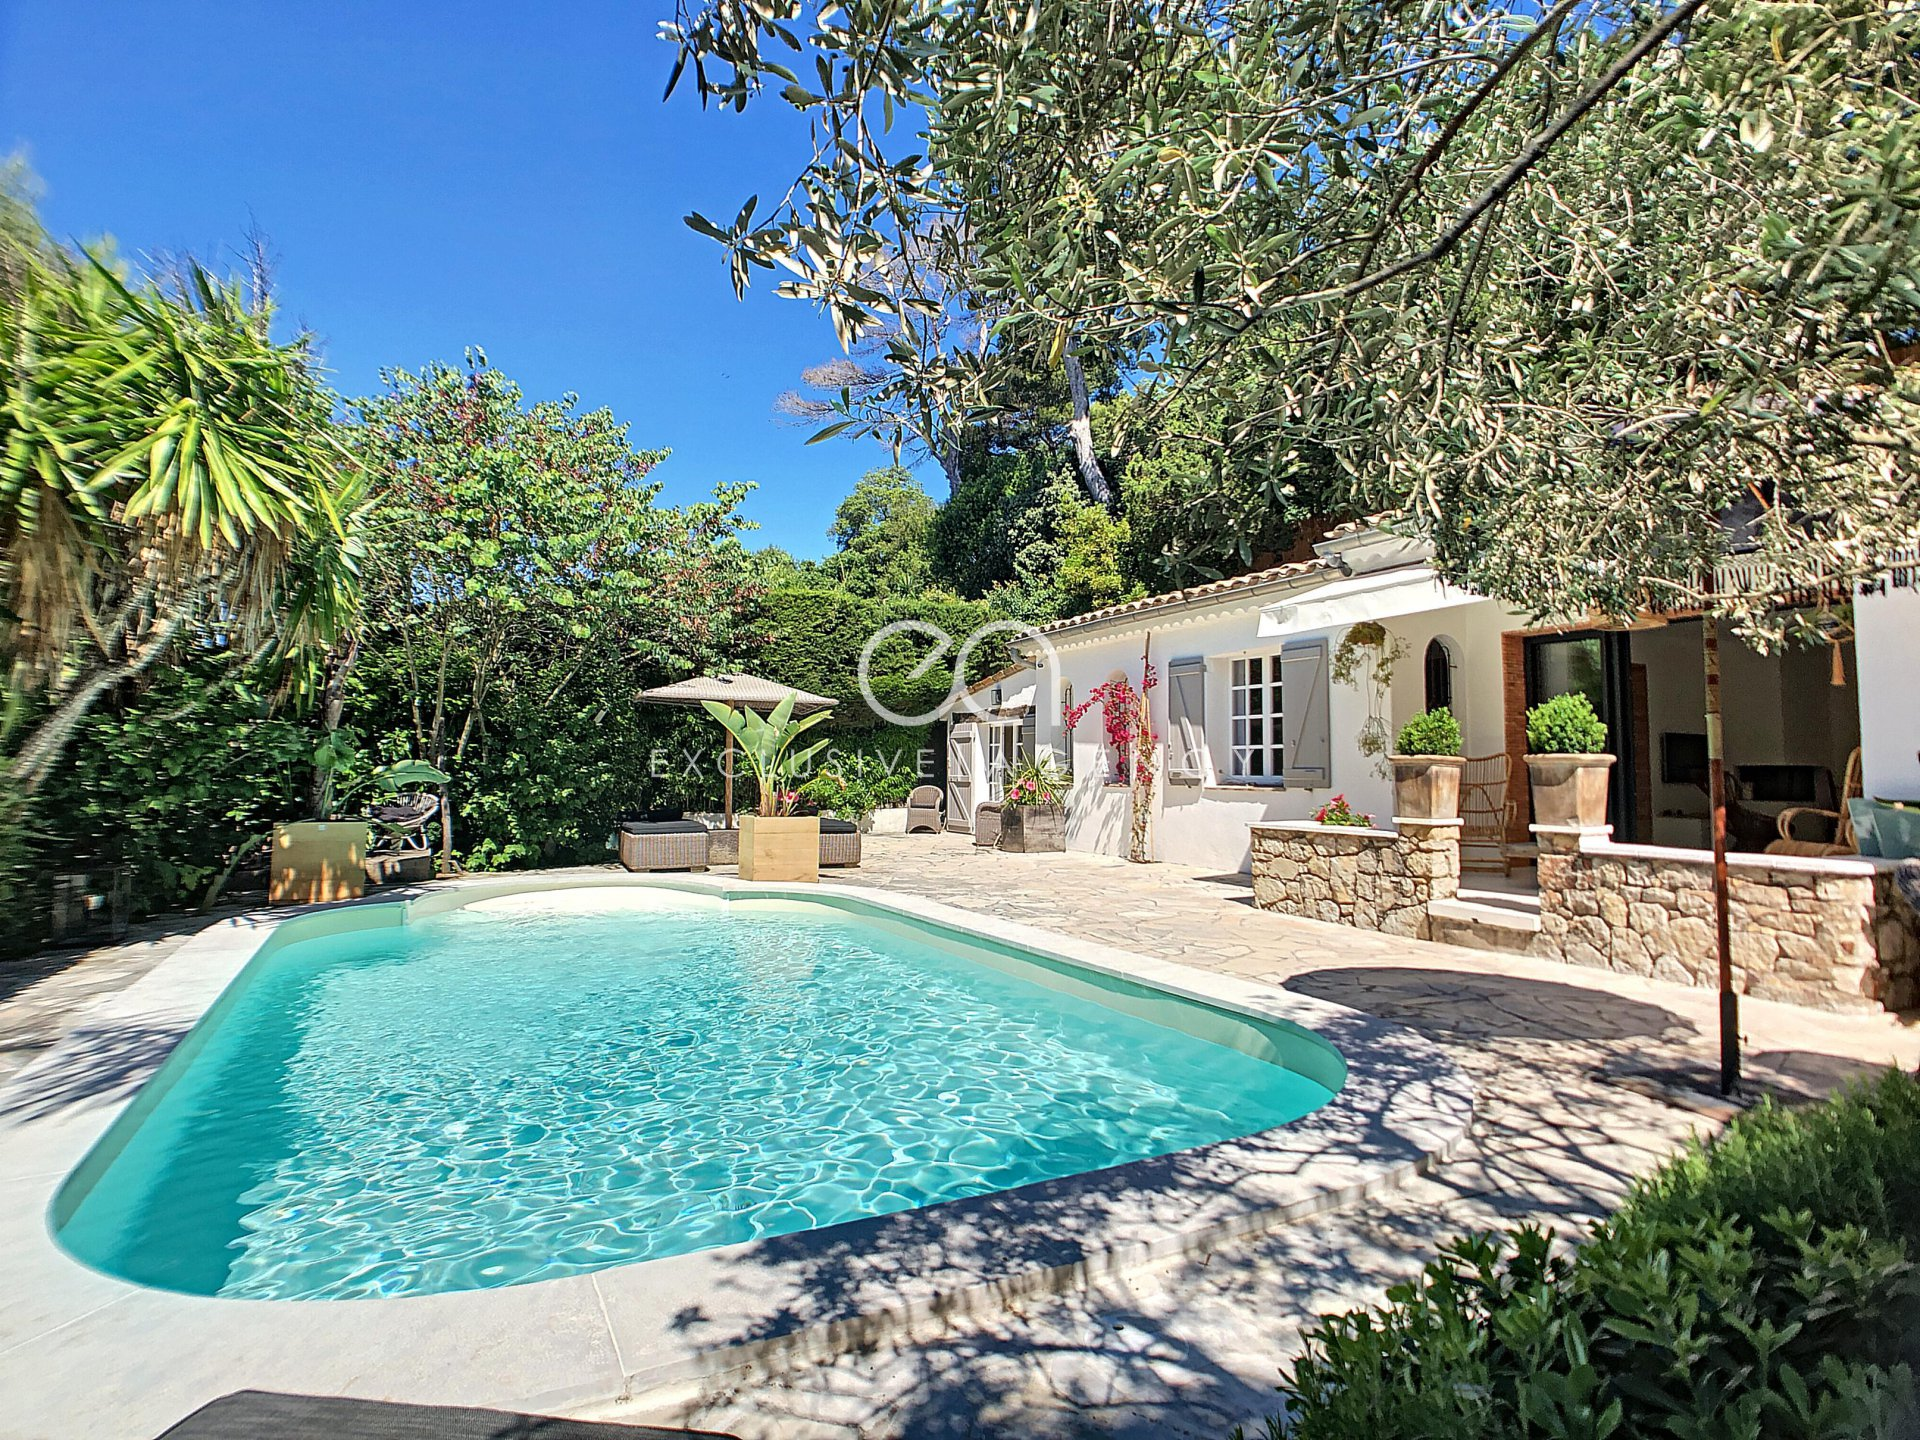 SHORT RENTAL VILLA Cannes 150sqm for 3 to 6 people with pool and garden